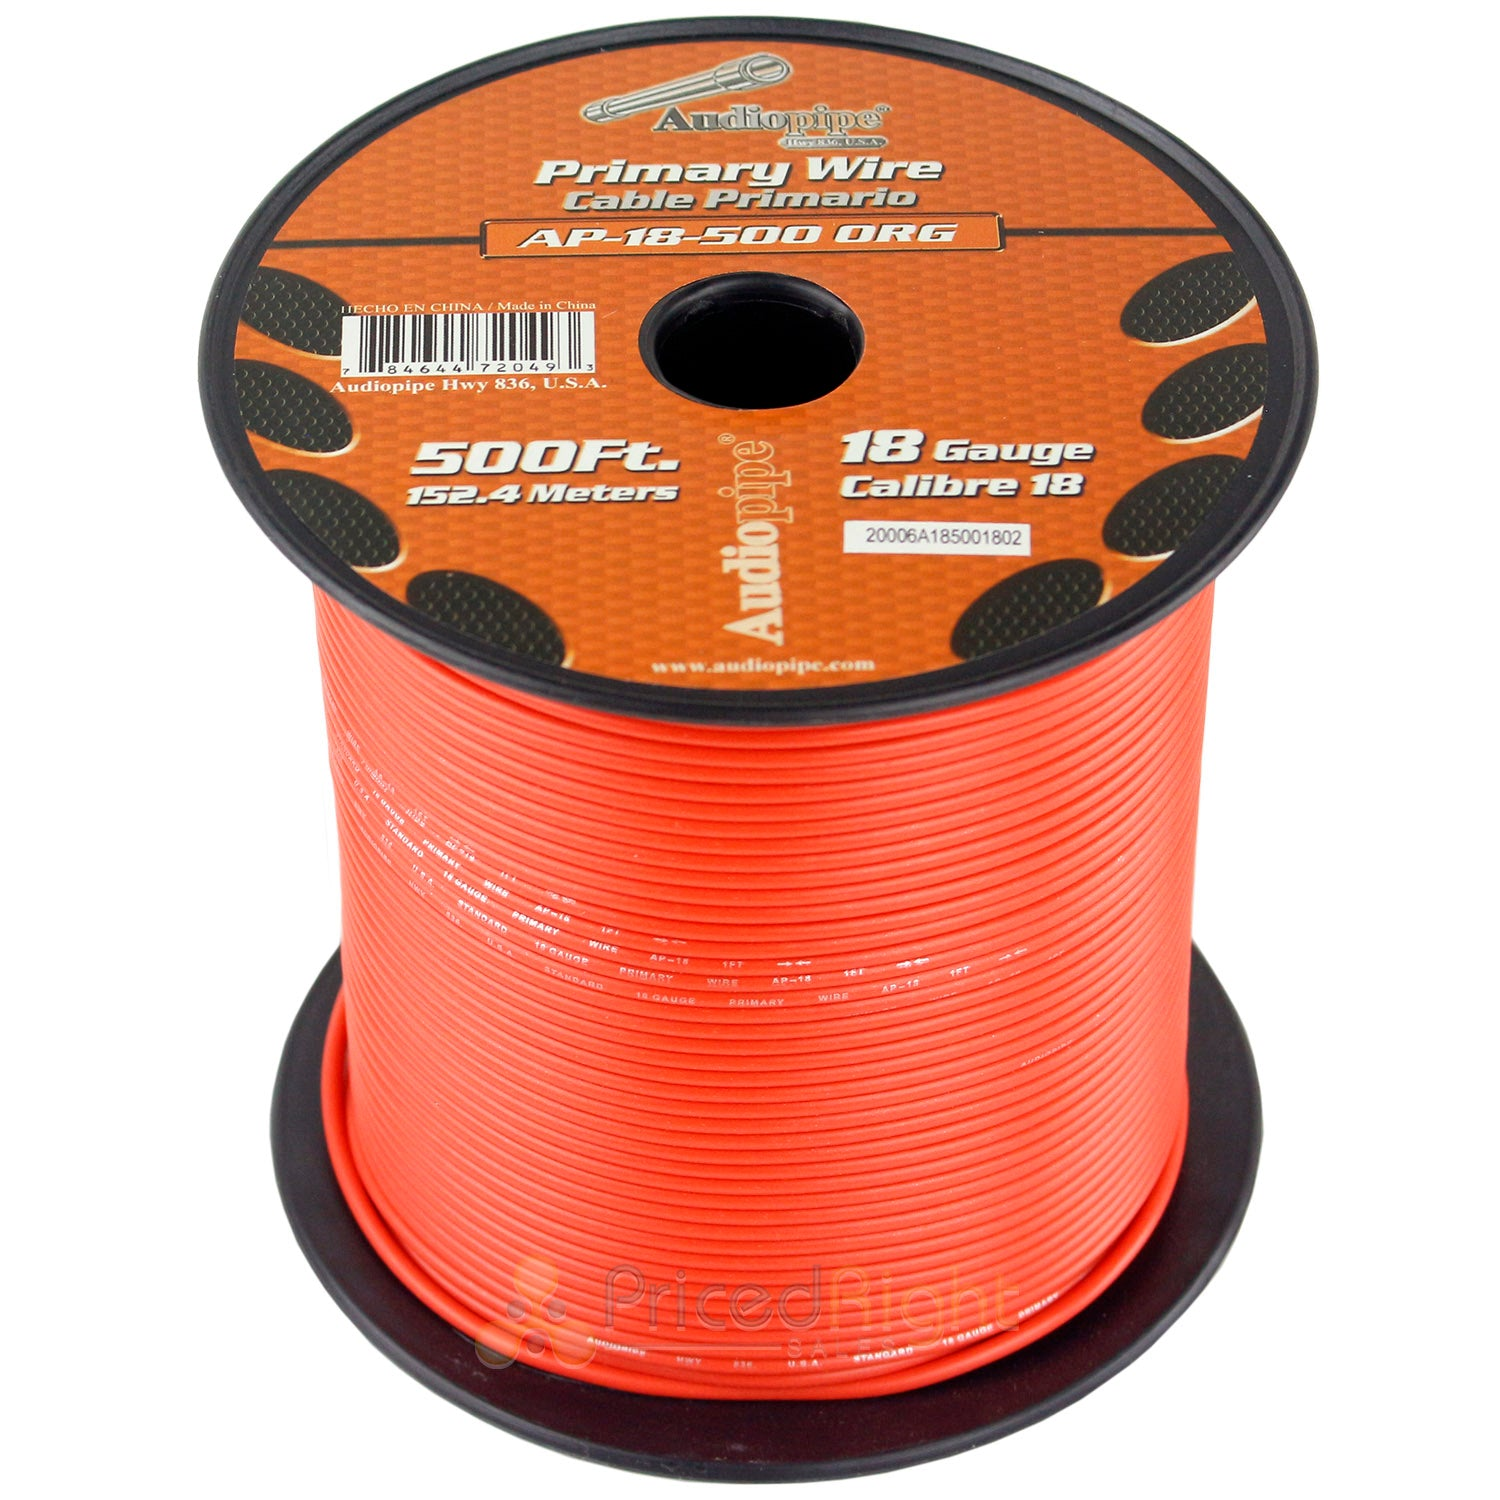 500' FT Spool Of Orange 18 Gauge AWG Feet Home Primary Power Cable Remote Wire